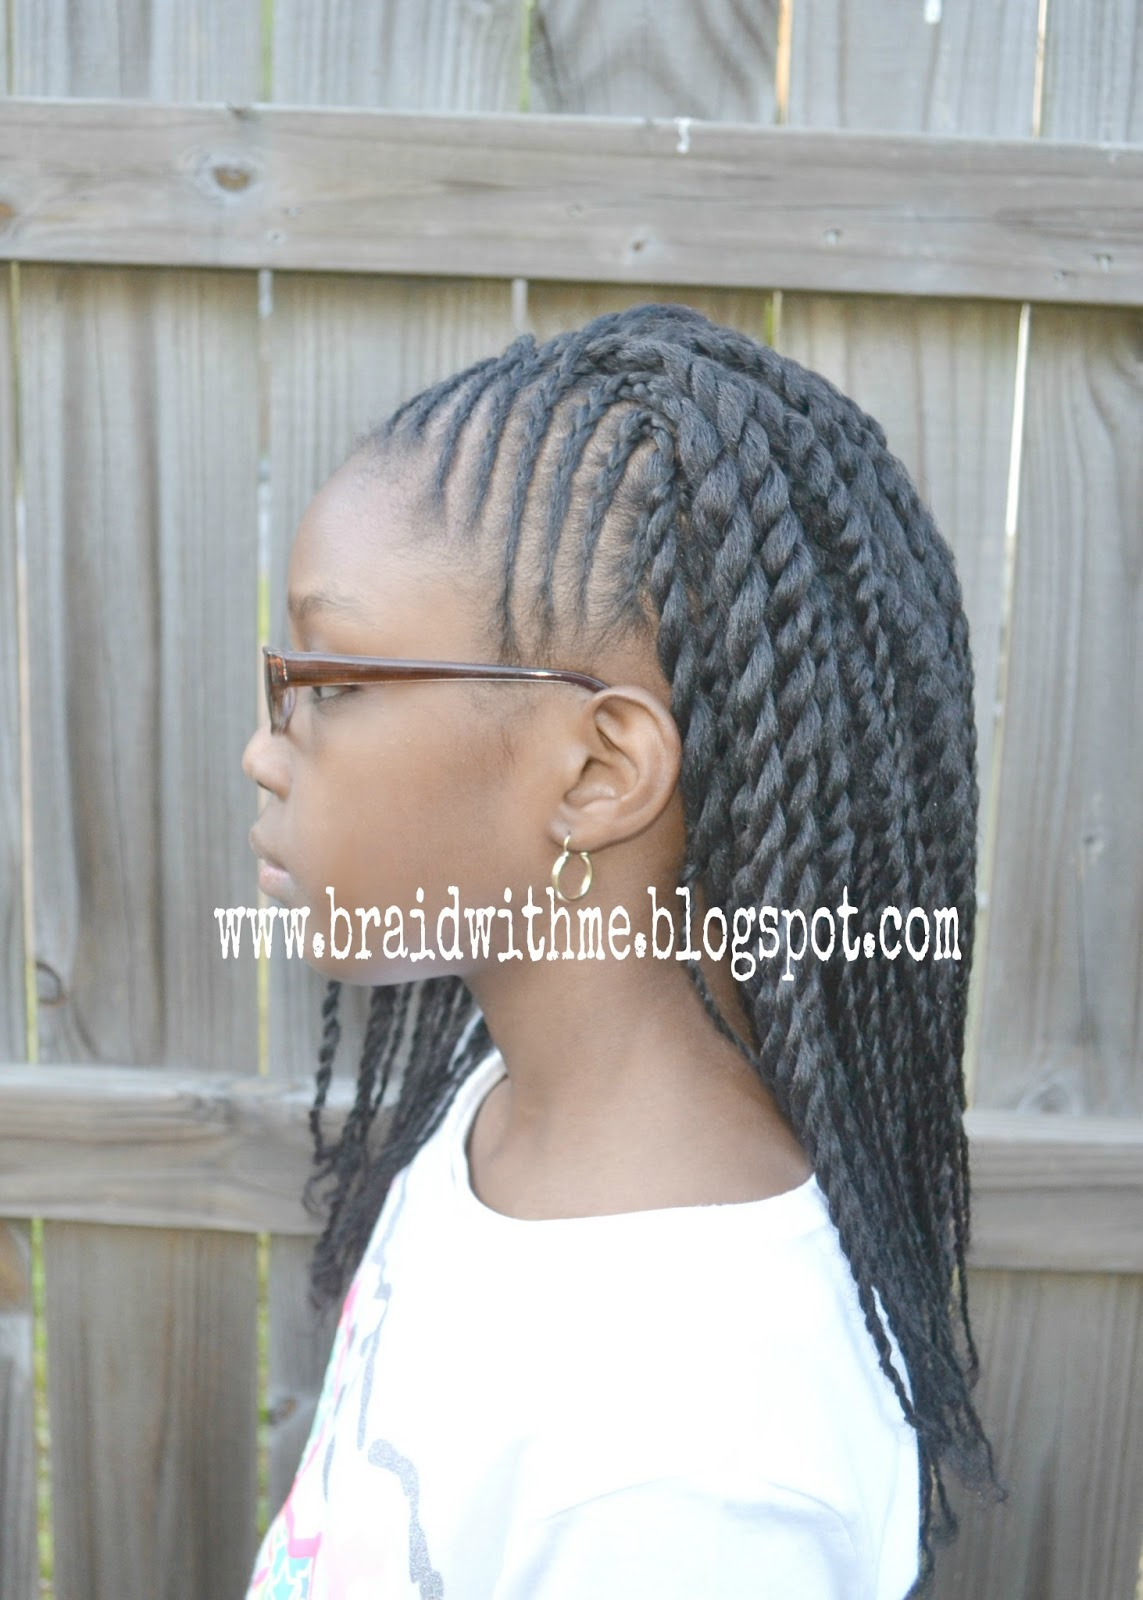 Braid With Me Curly Two Strand Twists